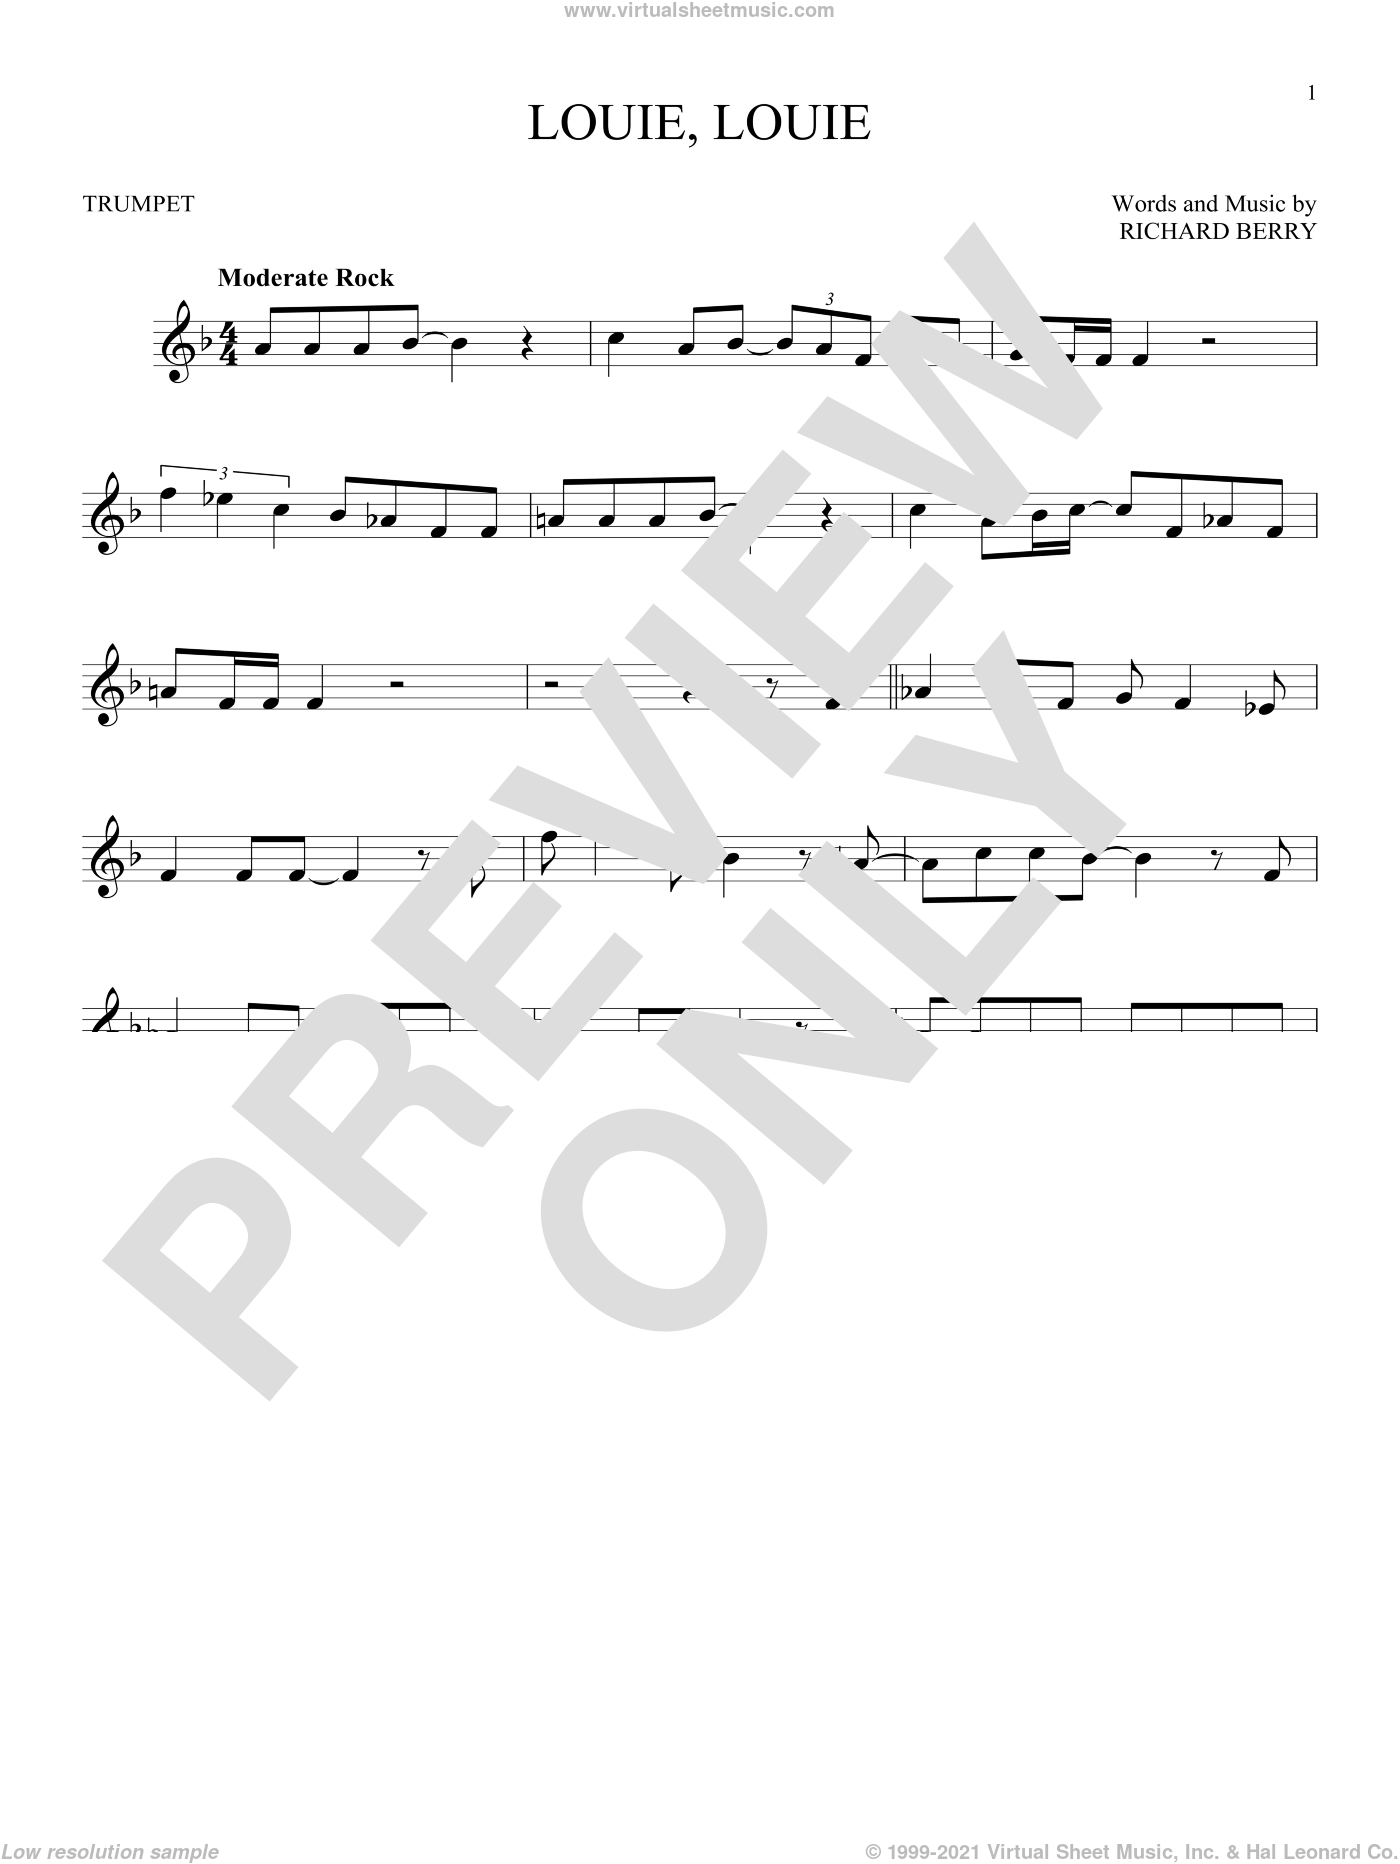 Louie, Louie sheet music for trumpet solo by Richard Berry